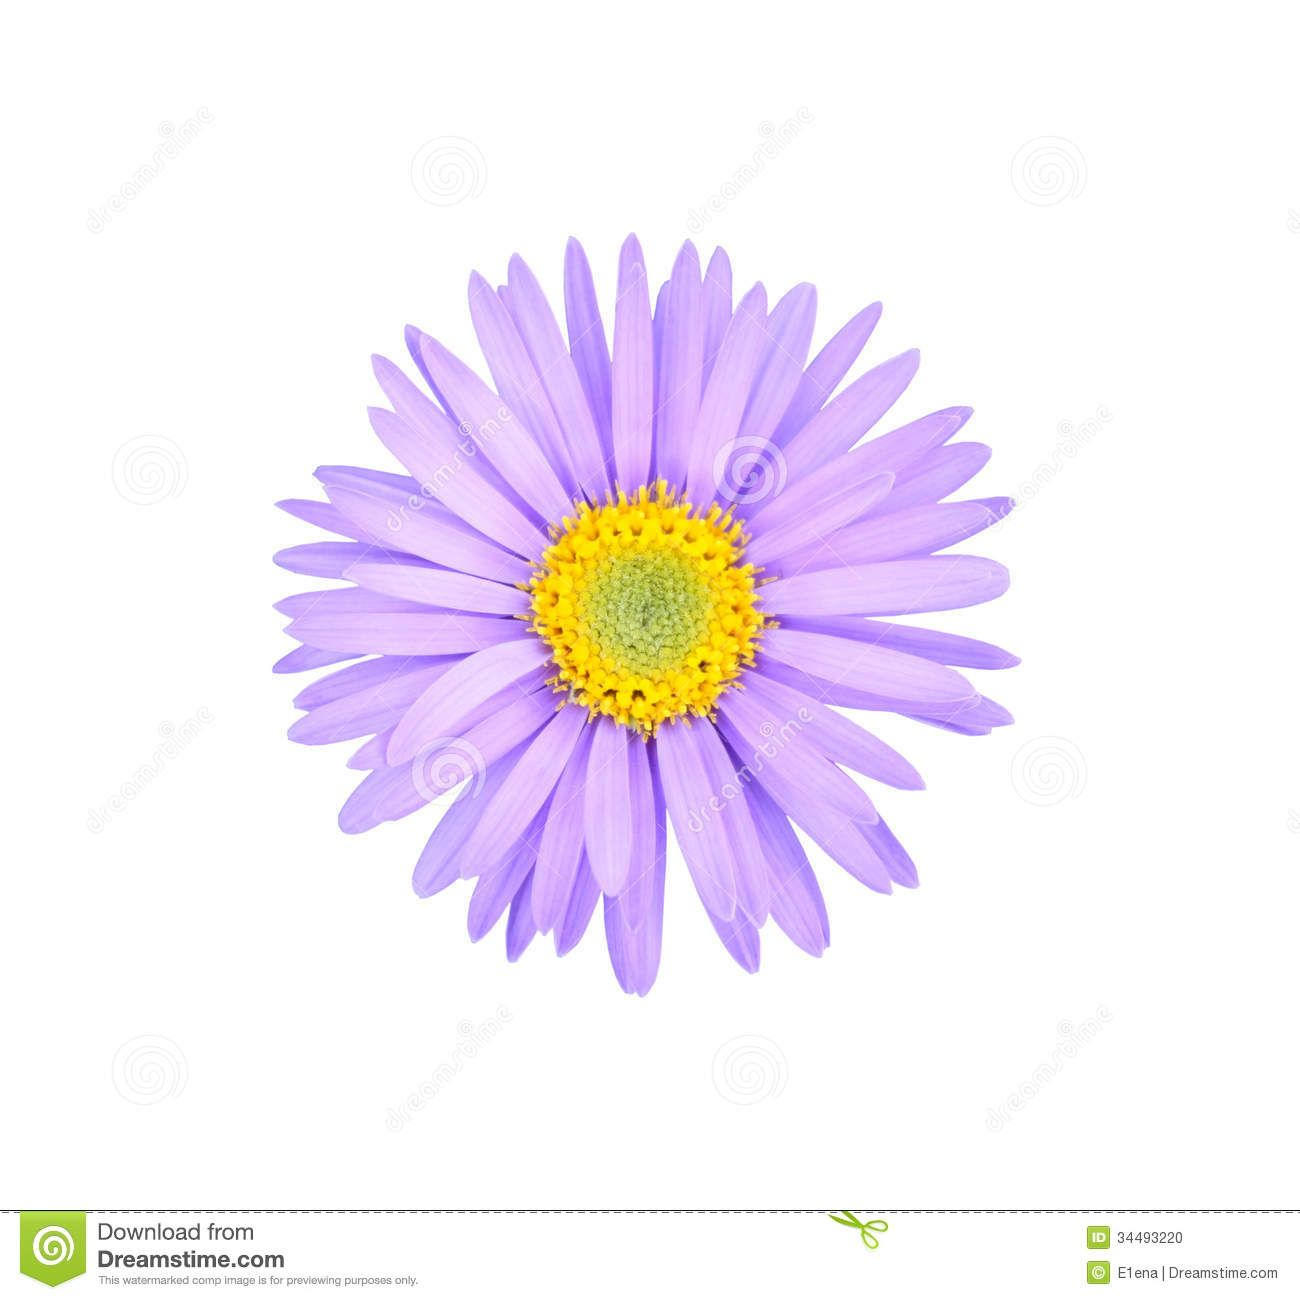 Aster Flower Tattoo Small Best Wallpapers Cloud Aster Flower Tattoos Aster Tattoo Birth Flower Tattoos